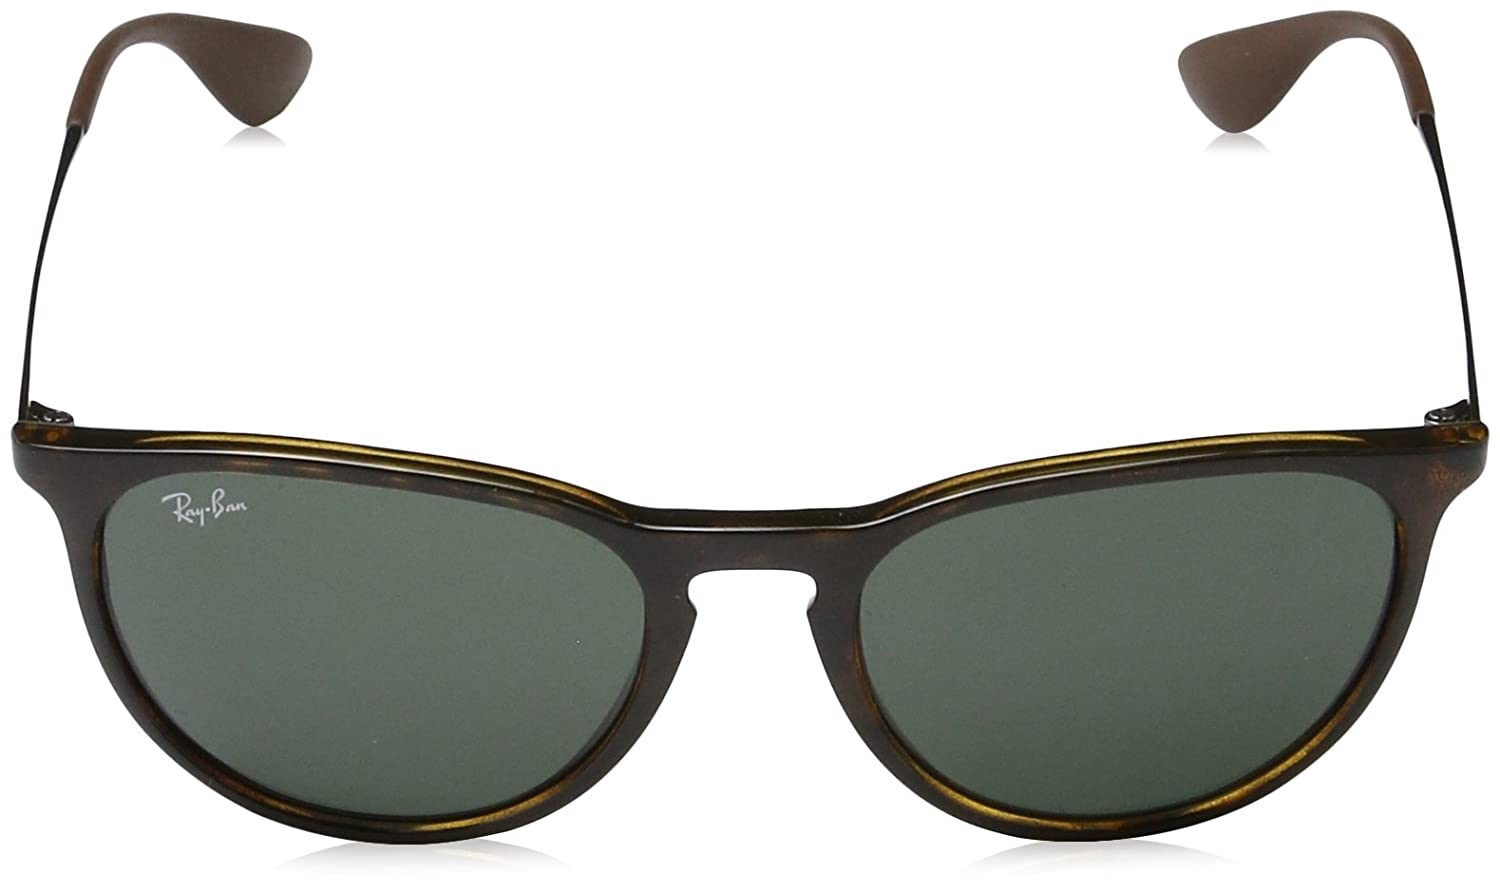 483db11d2c57b Product description. Bold velvet frames add color and unexpected texture to  these Ray-Ban sunglasses.